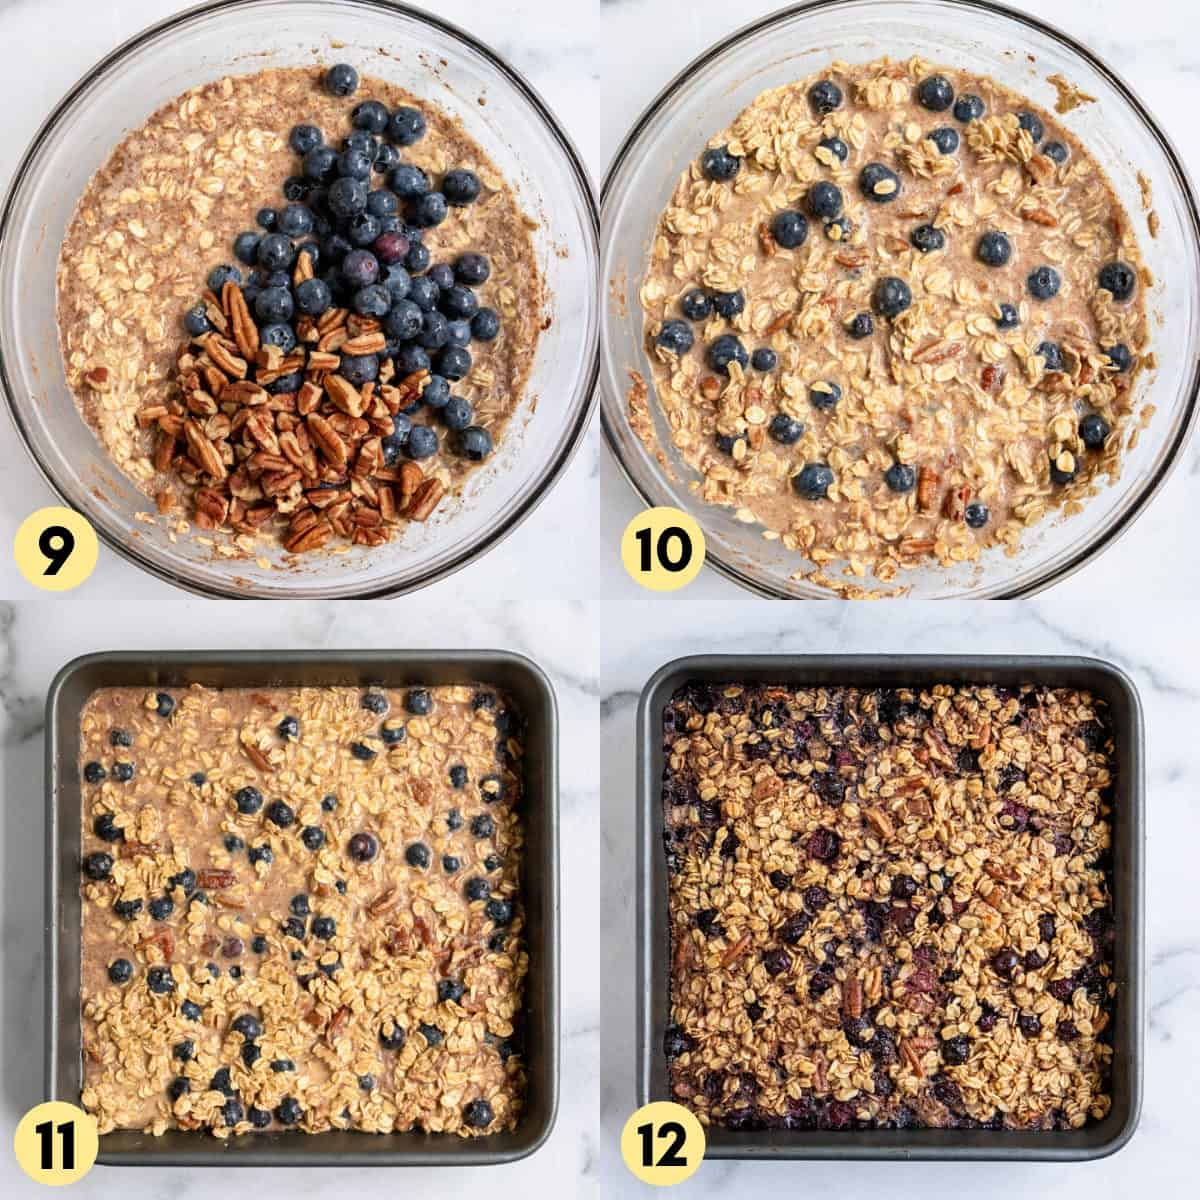 Blueberries and pecans added to mixture in bowl.